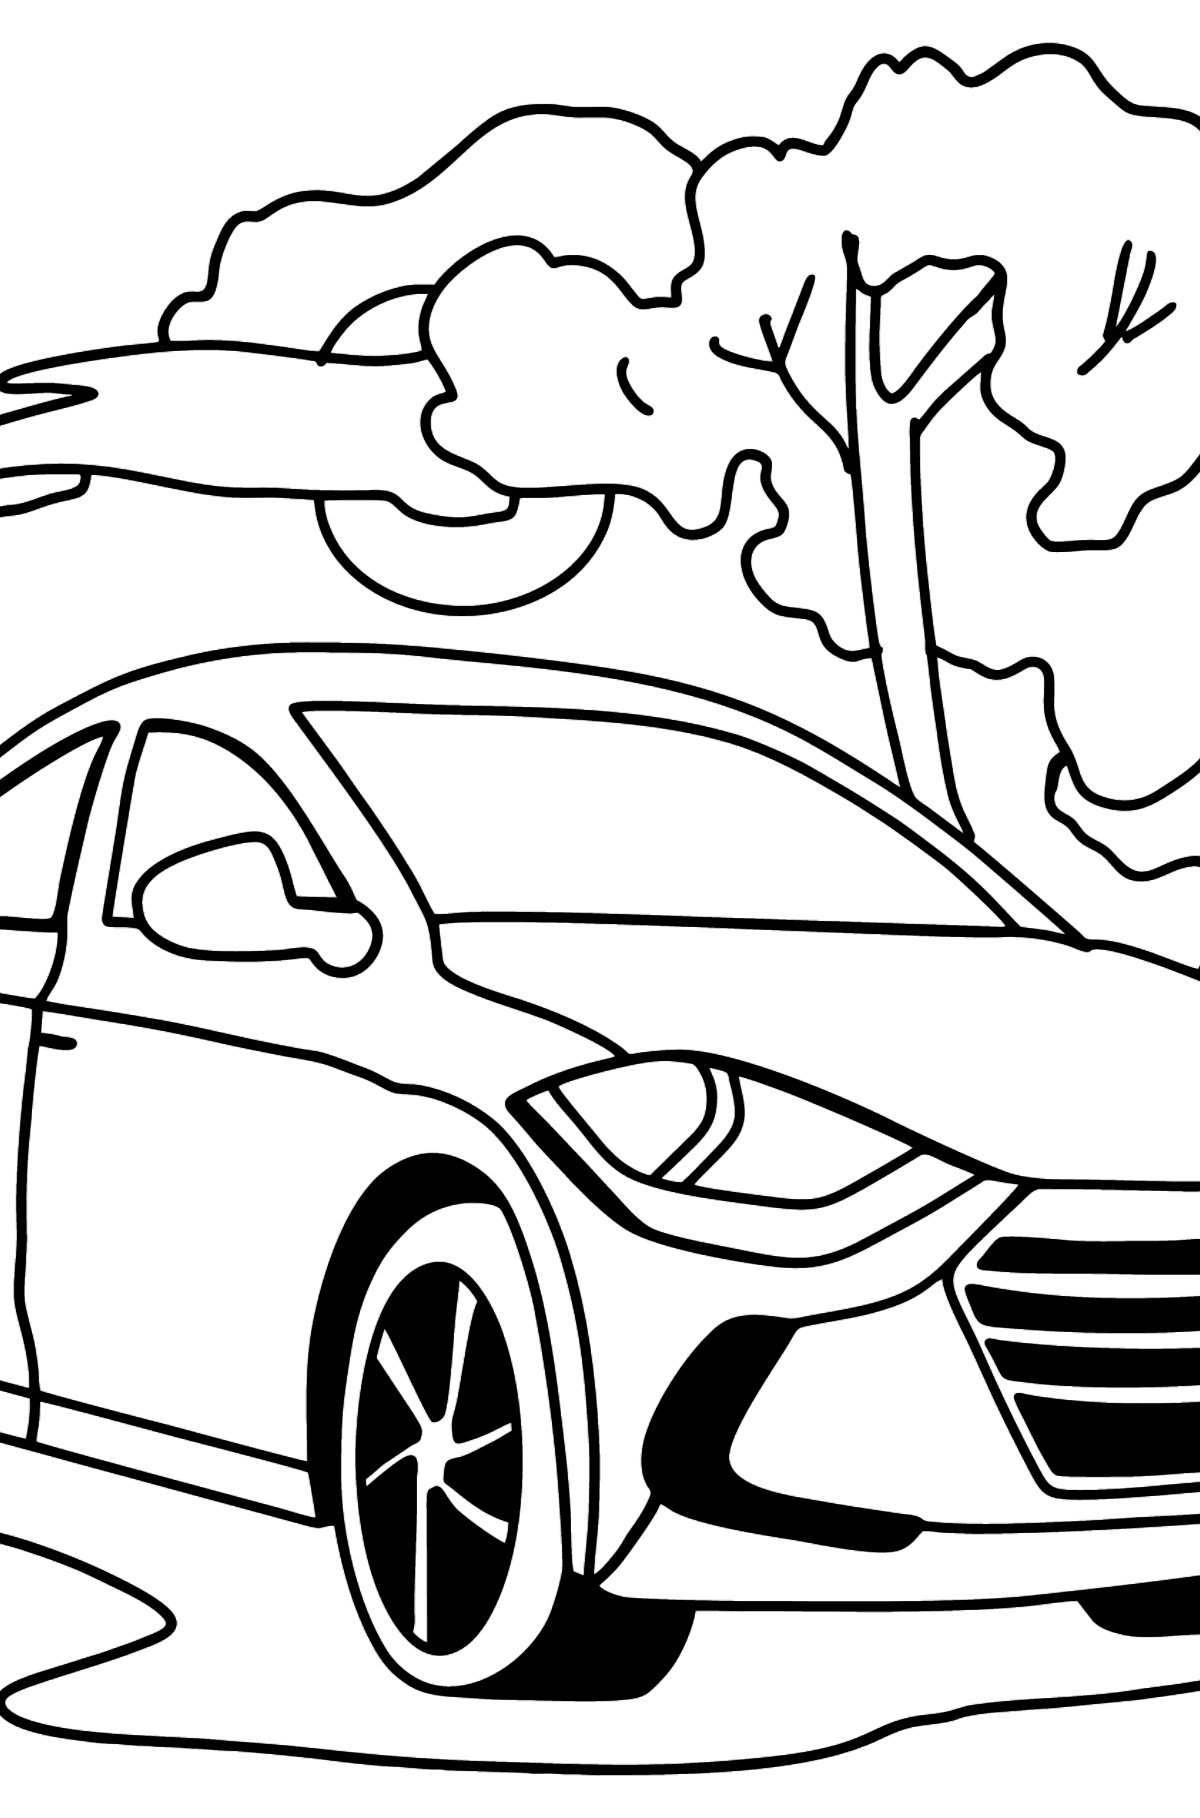 Hyundai car coloring page - Coloring Pages for Kids